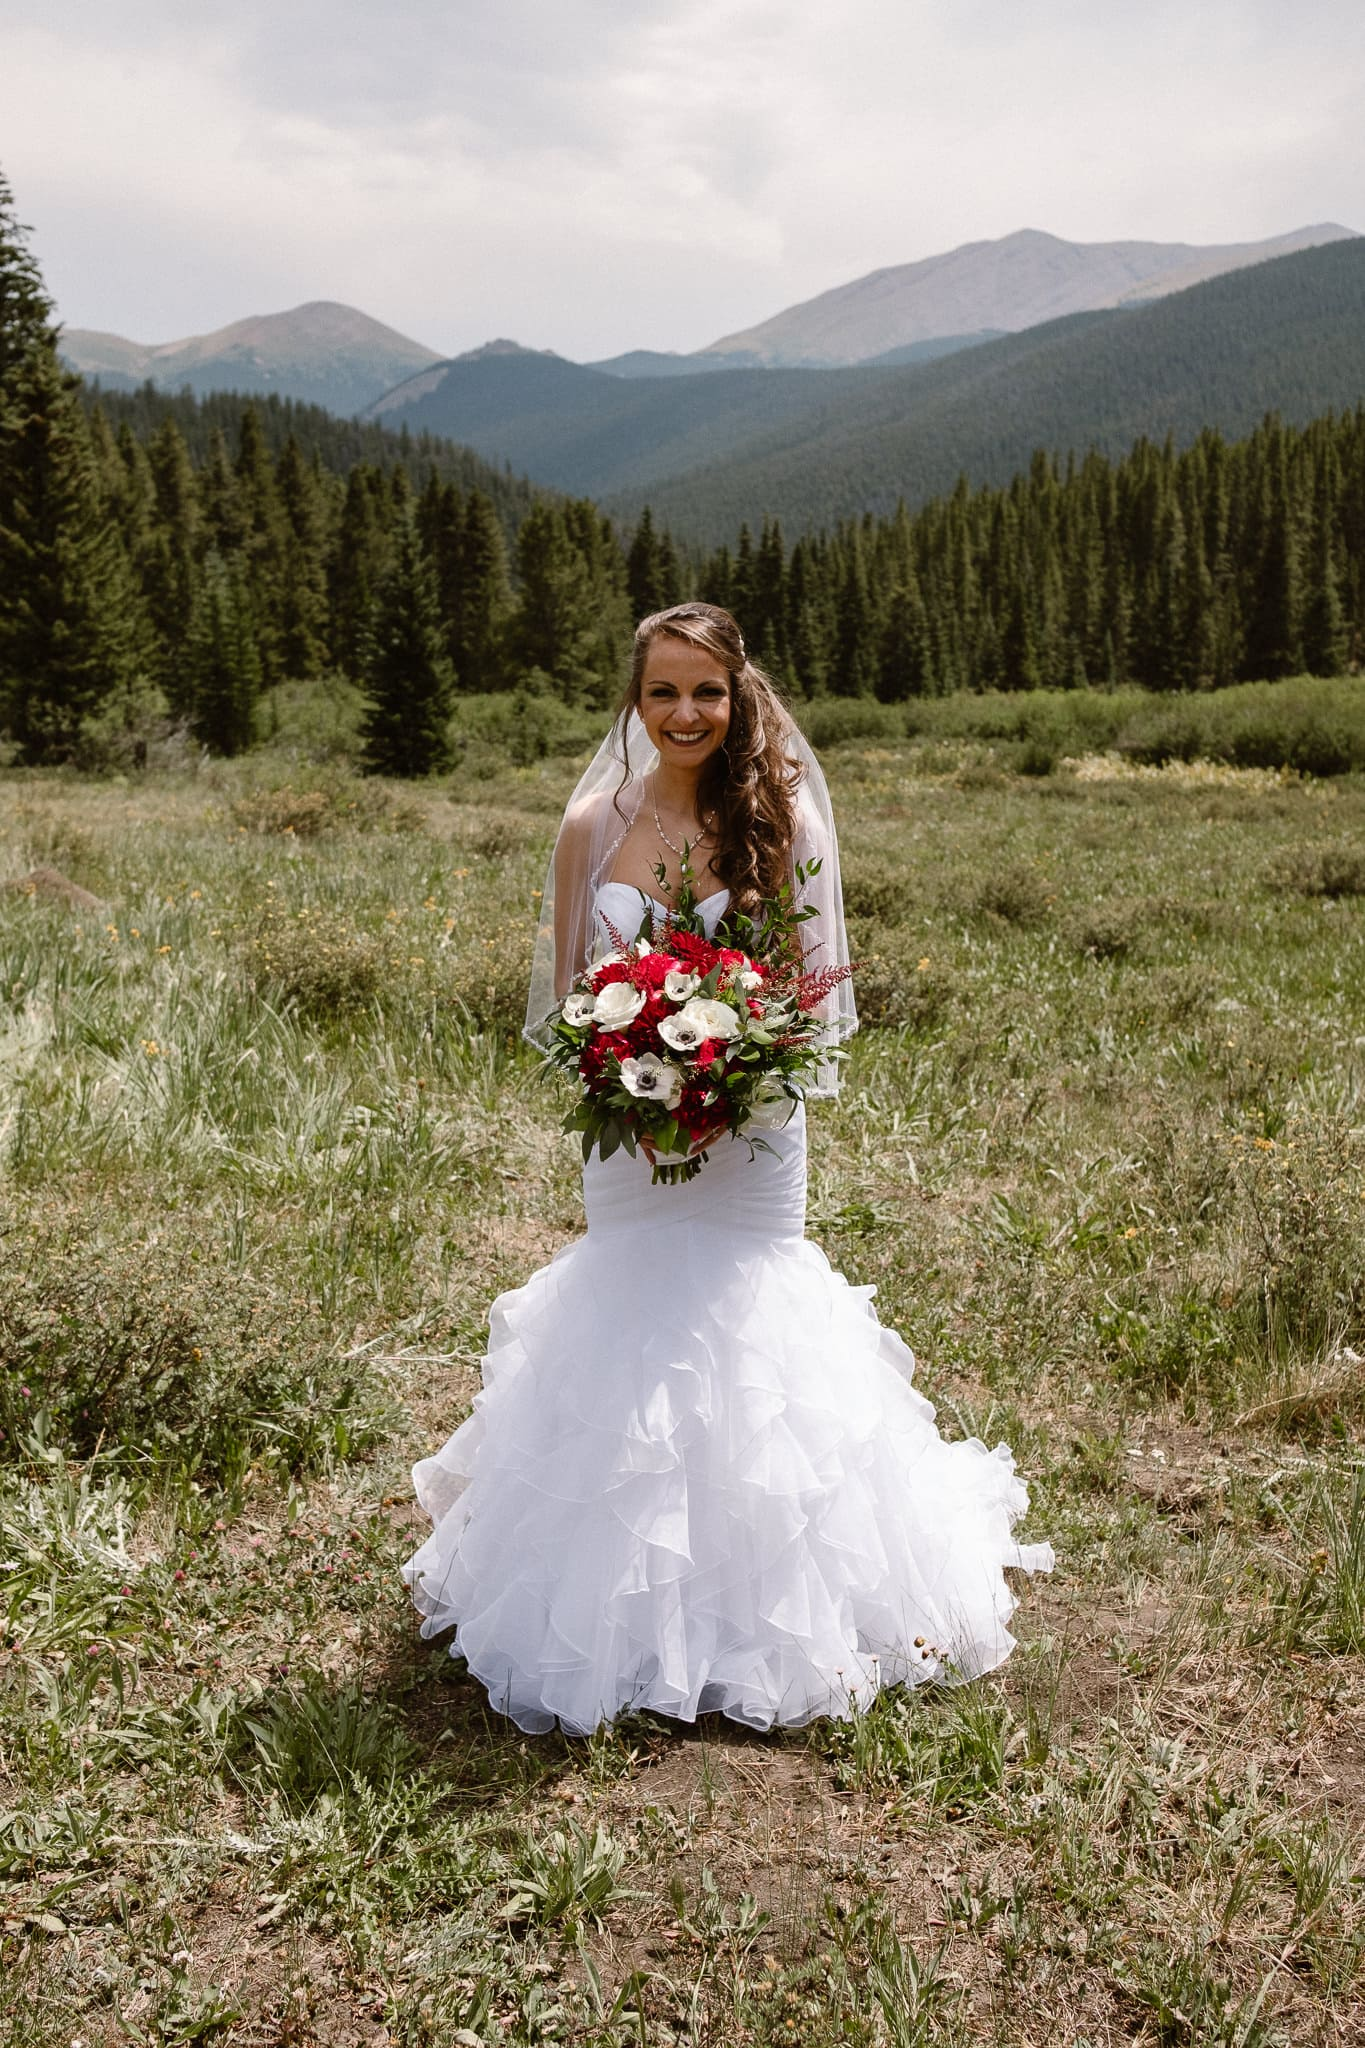 Lodge at Breckenridge Wedding Photographer, Colorado mountain wedding photographer, intimate wedding, bride with bouquet, bridal portraits, red and white bouquet, mermaid wedding dress